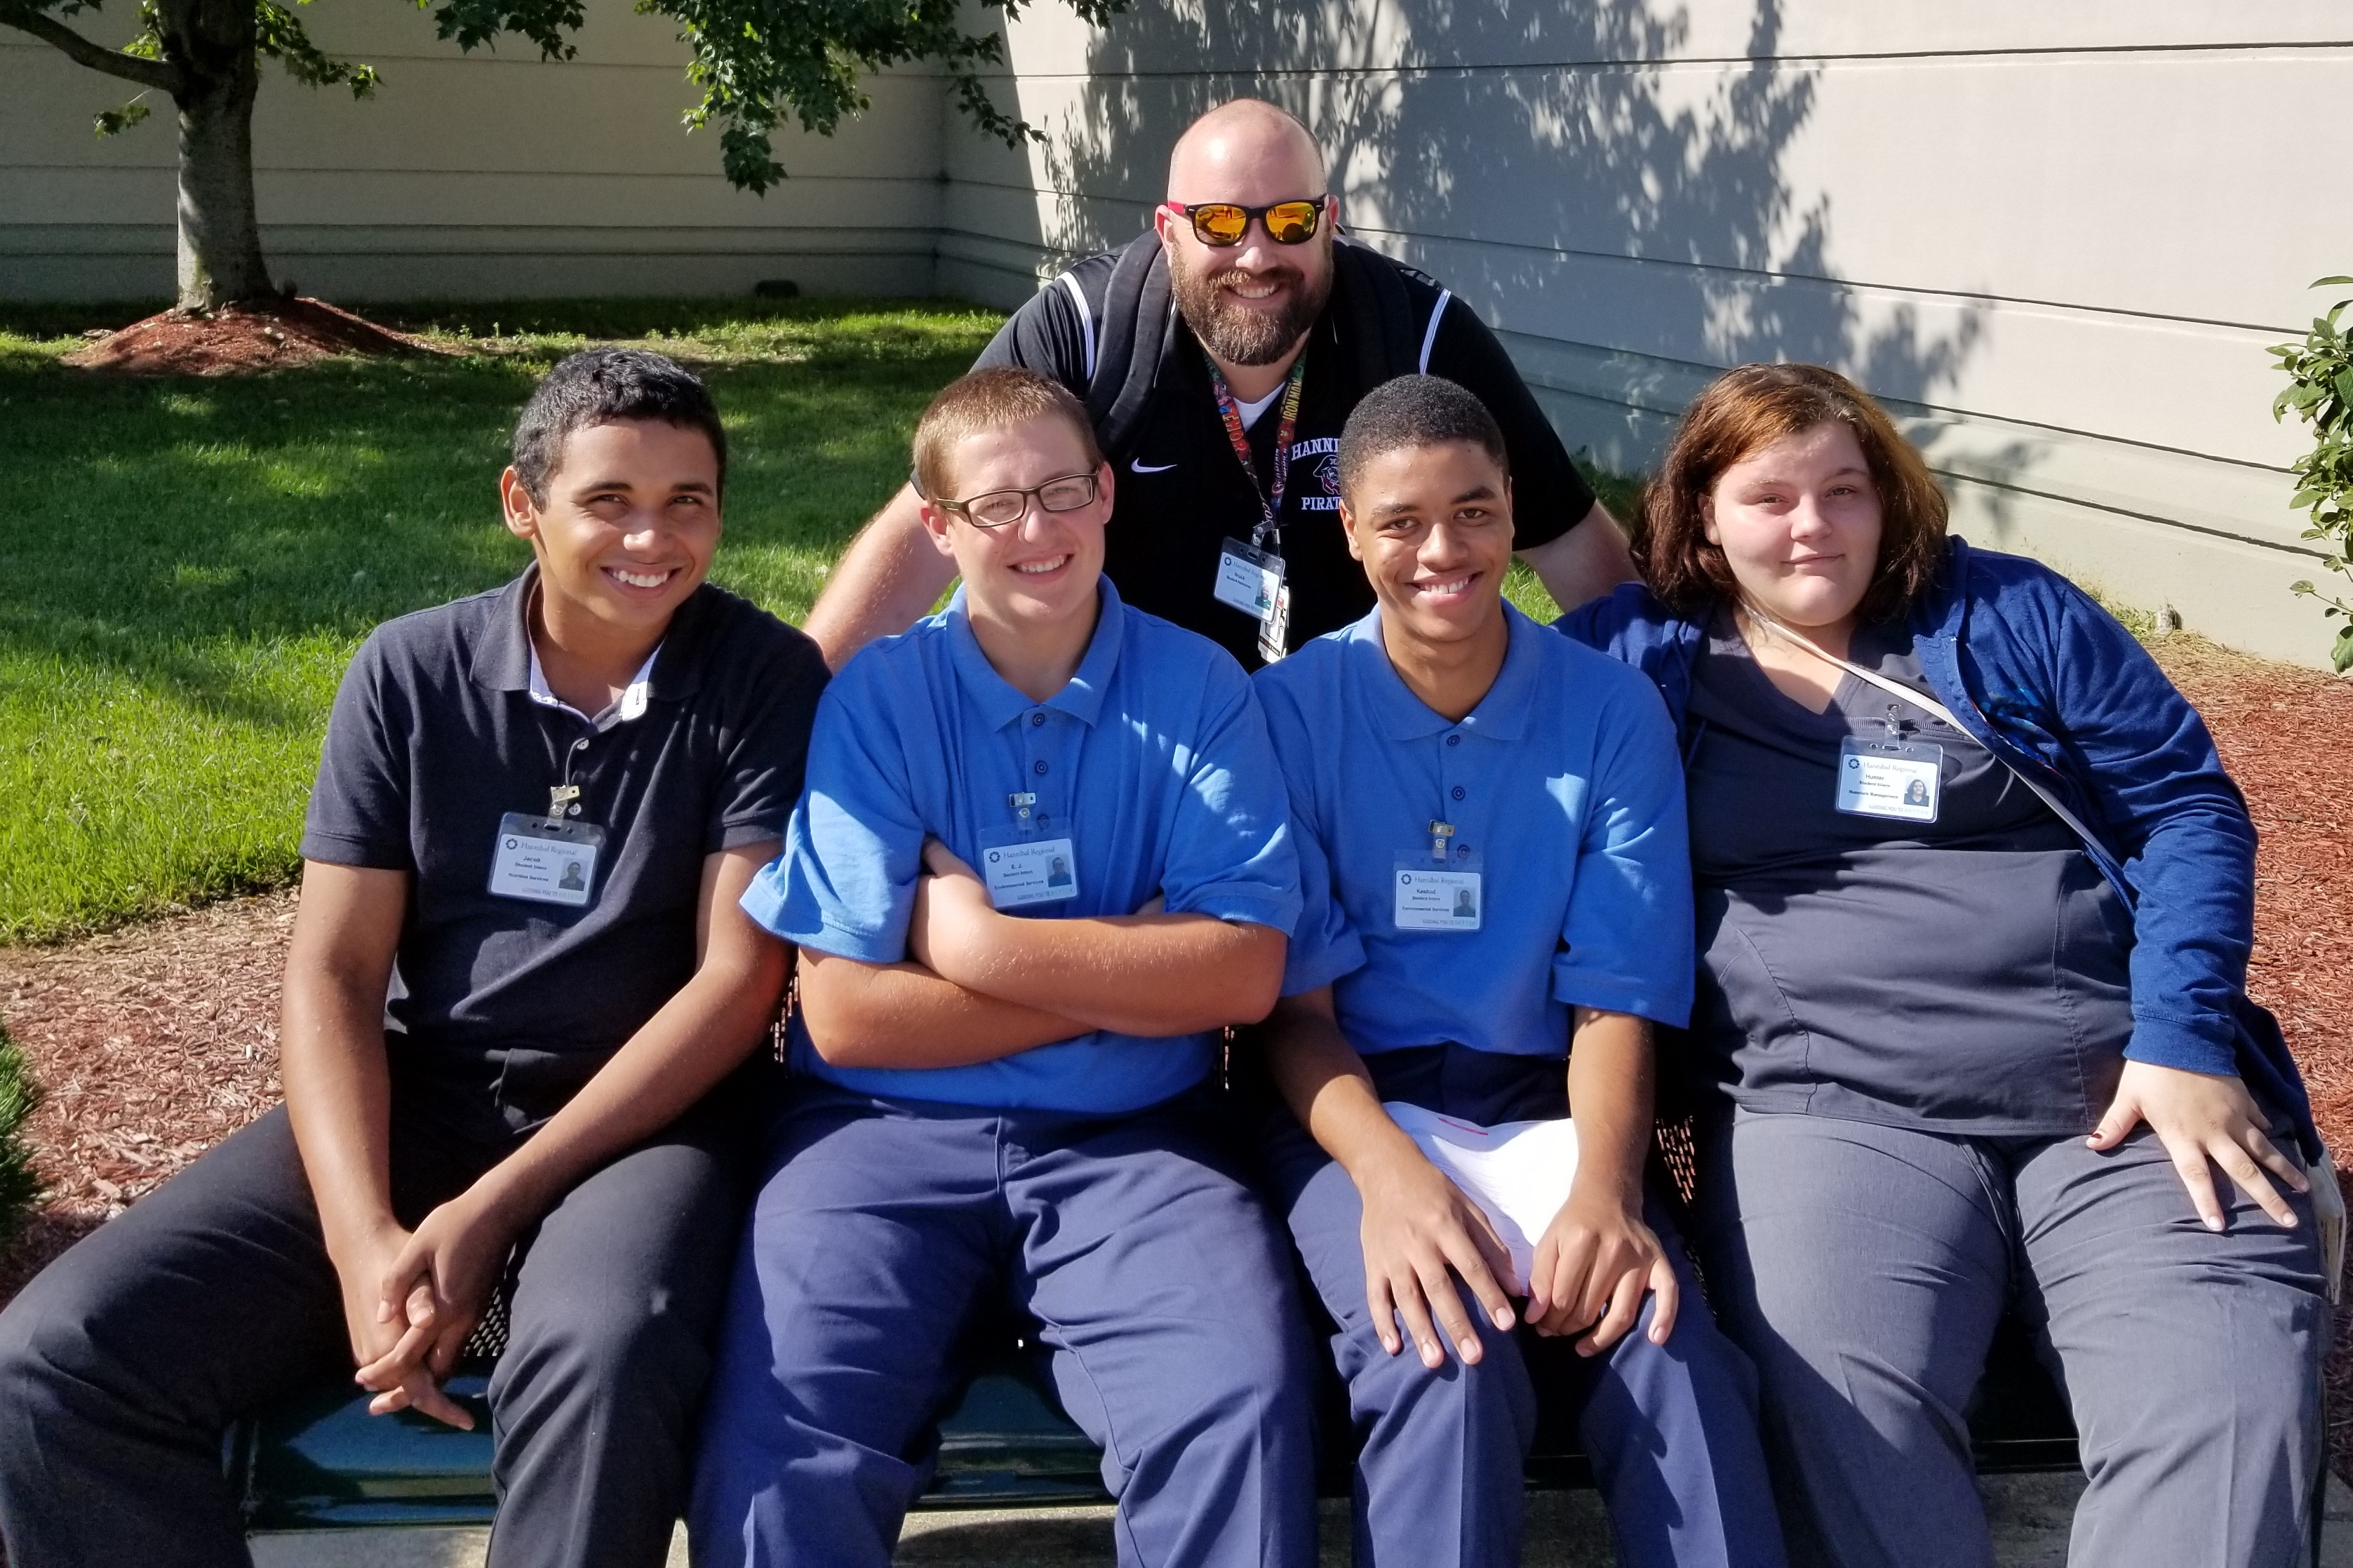 HEALTHY FUTURES IN SPECIAL EDUCATION—Hannibal Public School District's Basic Employment Skills Training program helps students with special needs learn life skills through work experience at a local hospital.